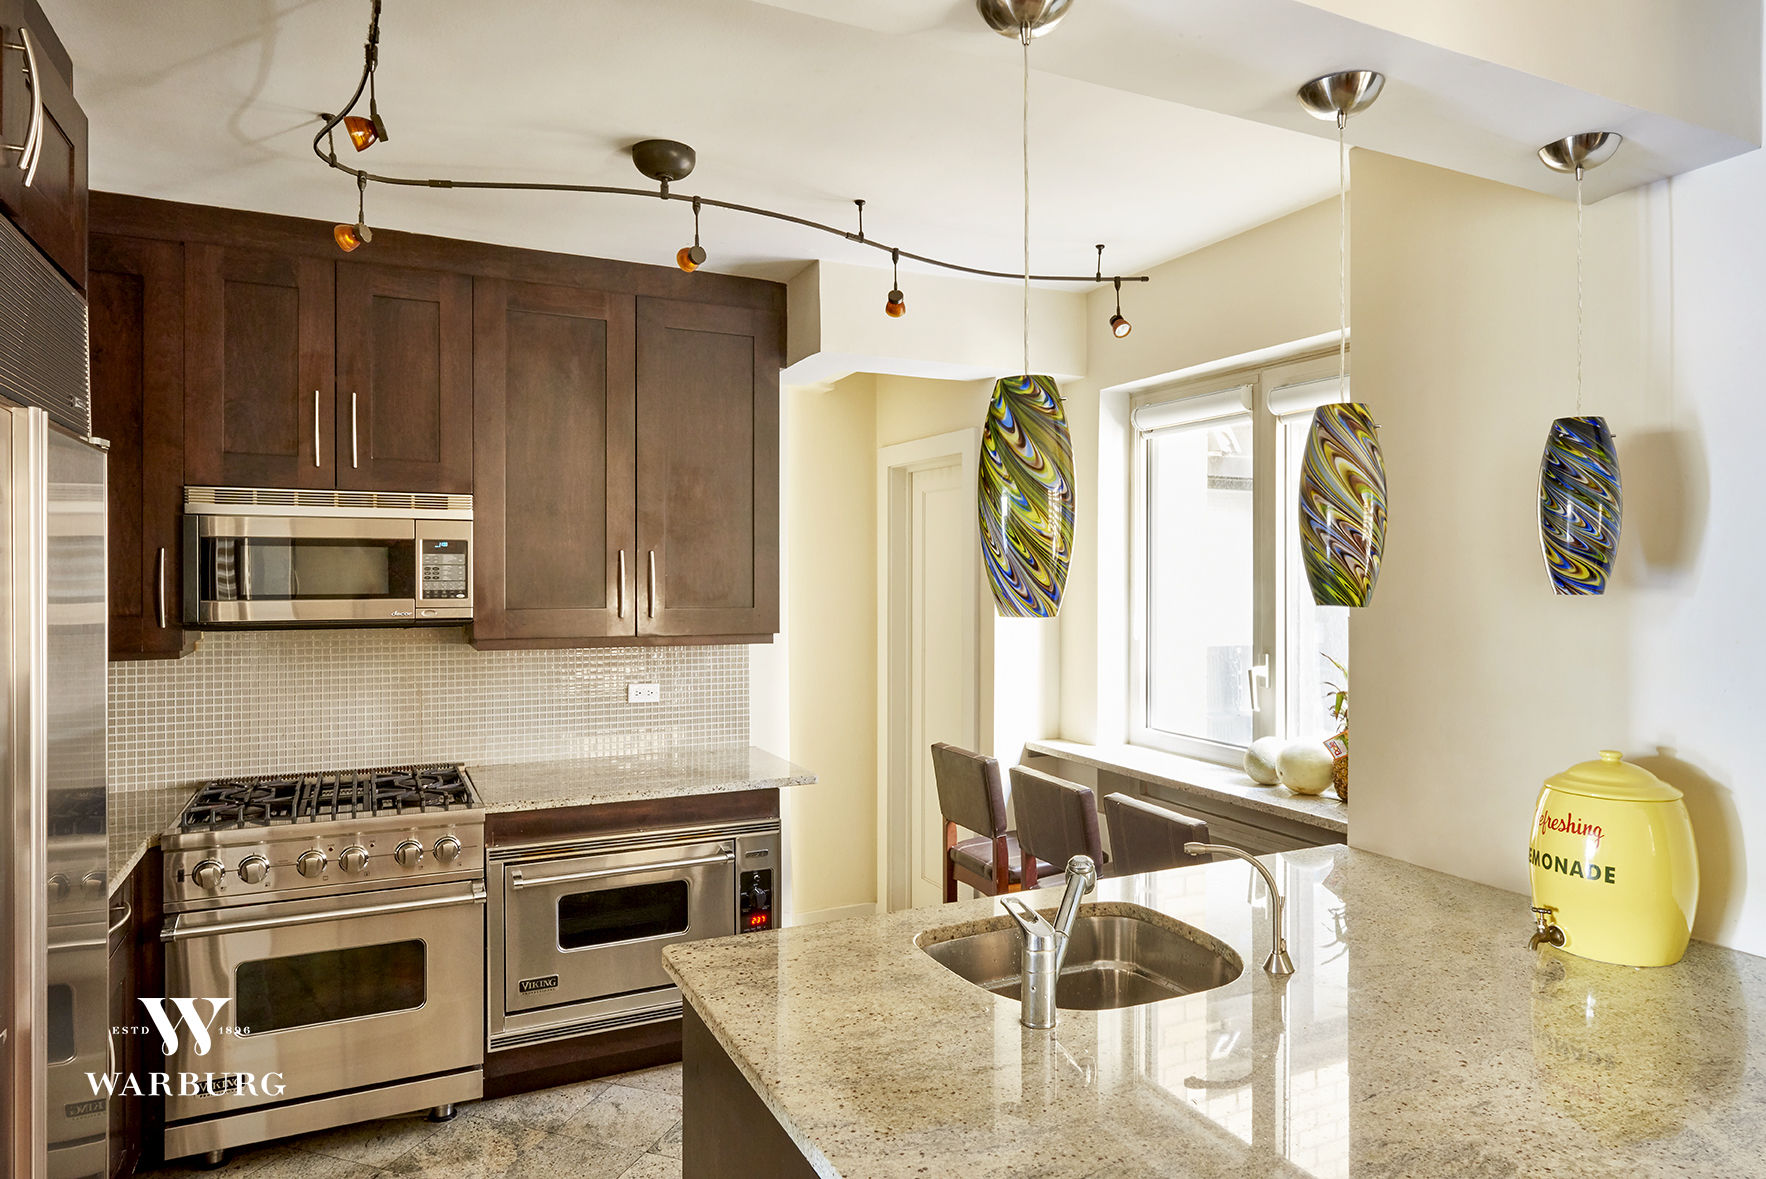 45 East End Ave., Apt 5A, Yorkville, NY 10028 - WR-224682 ...